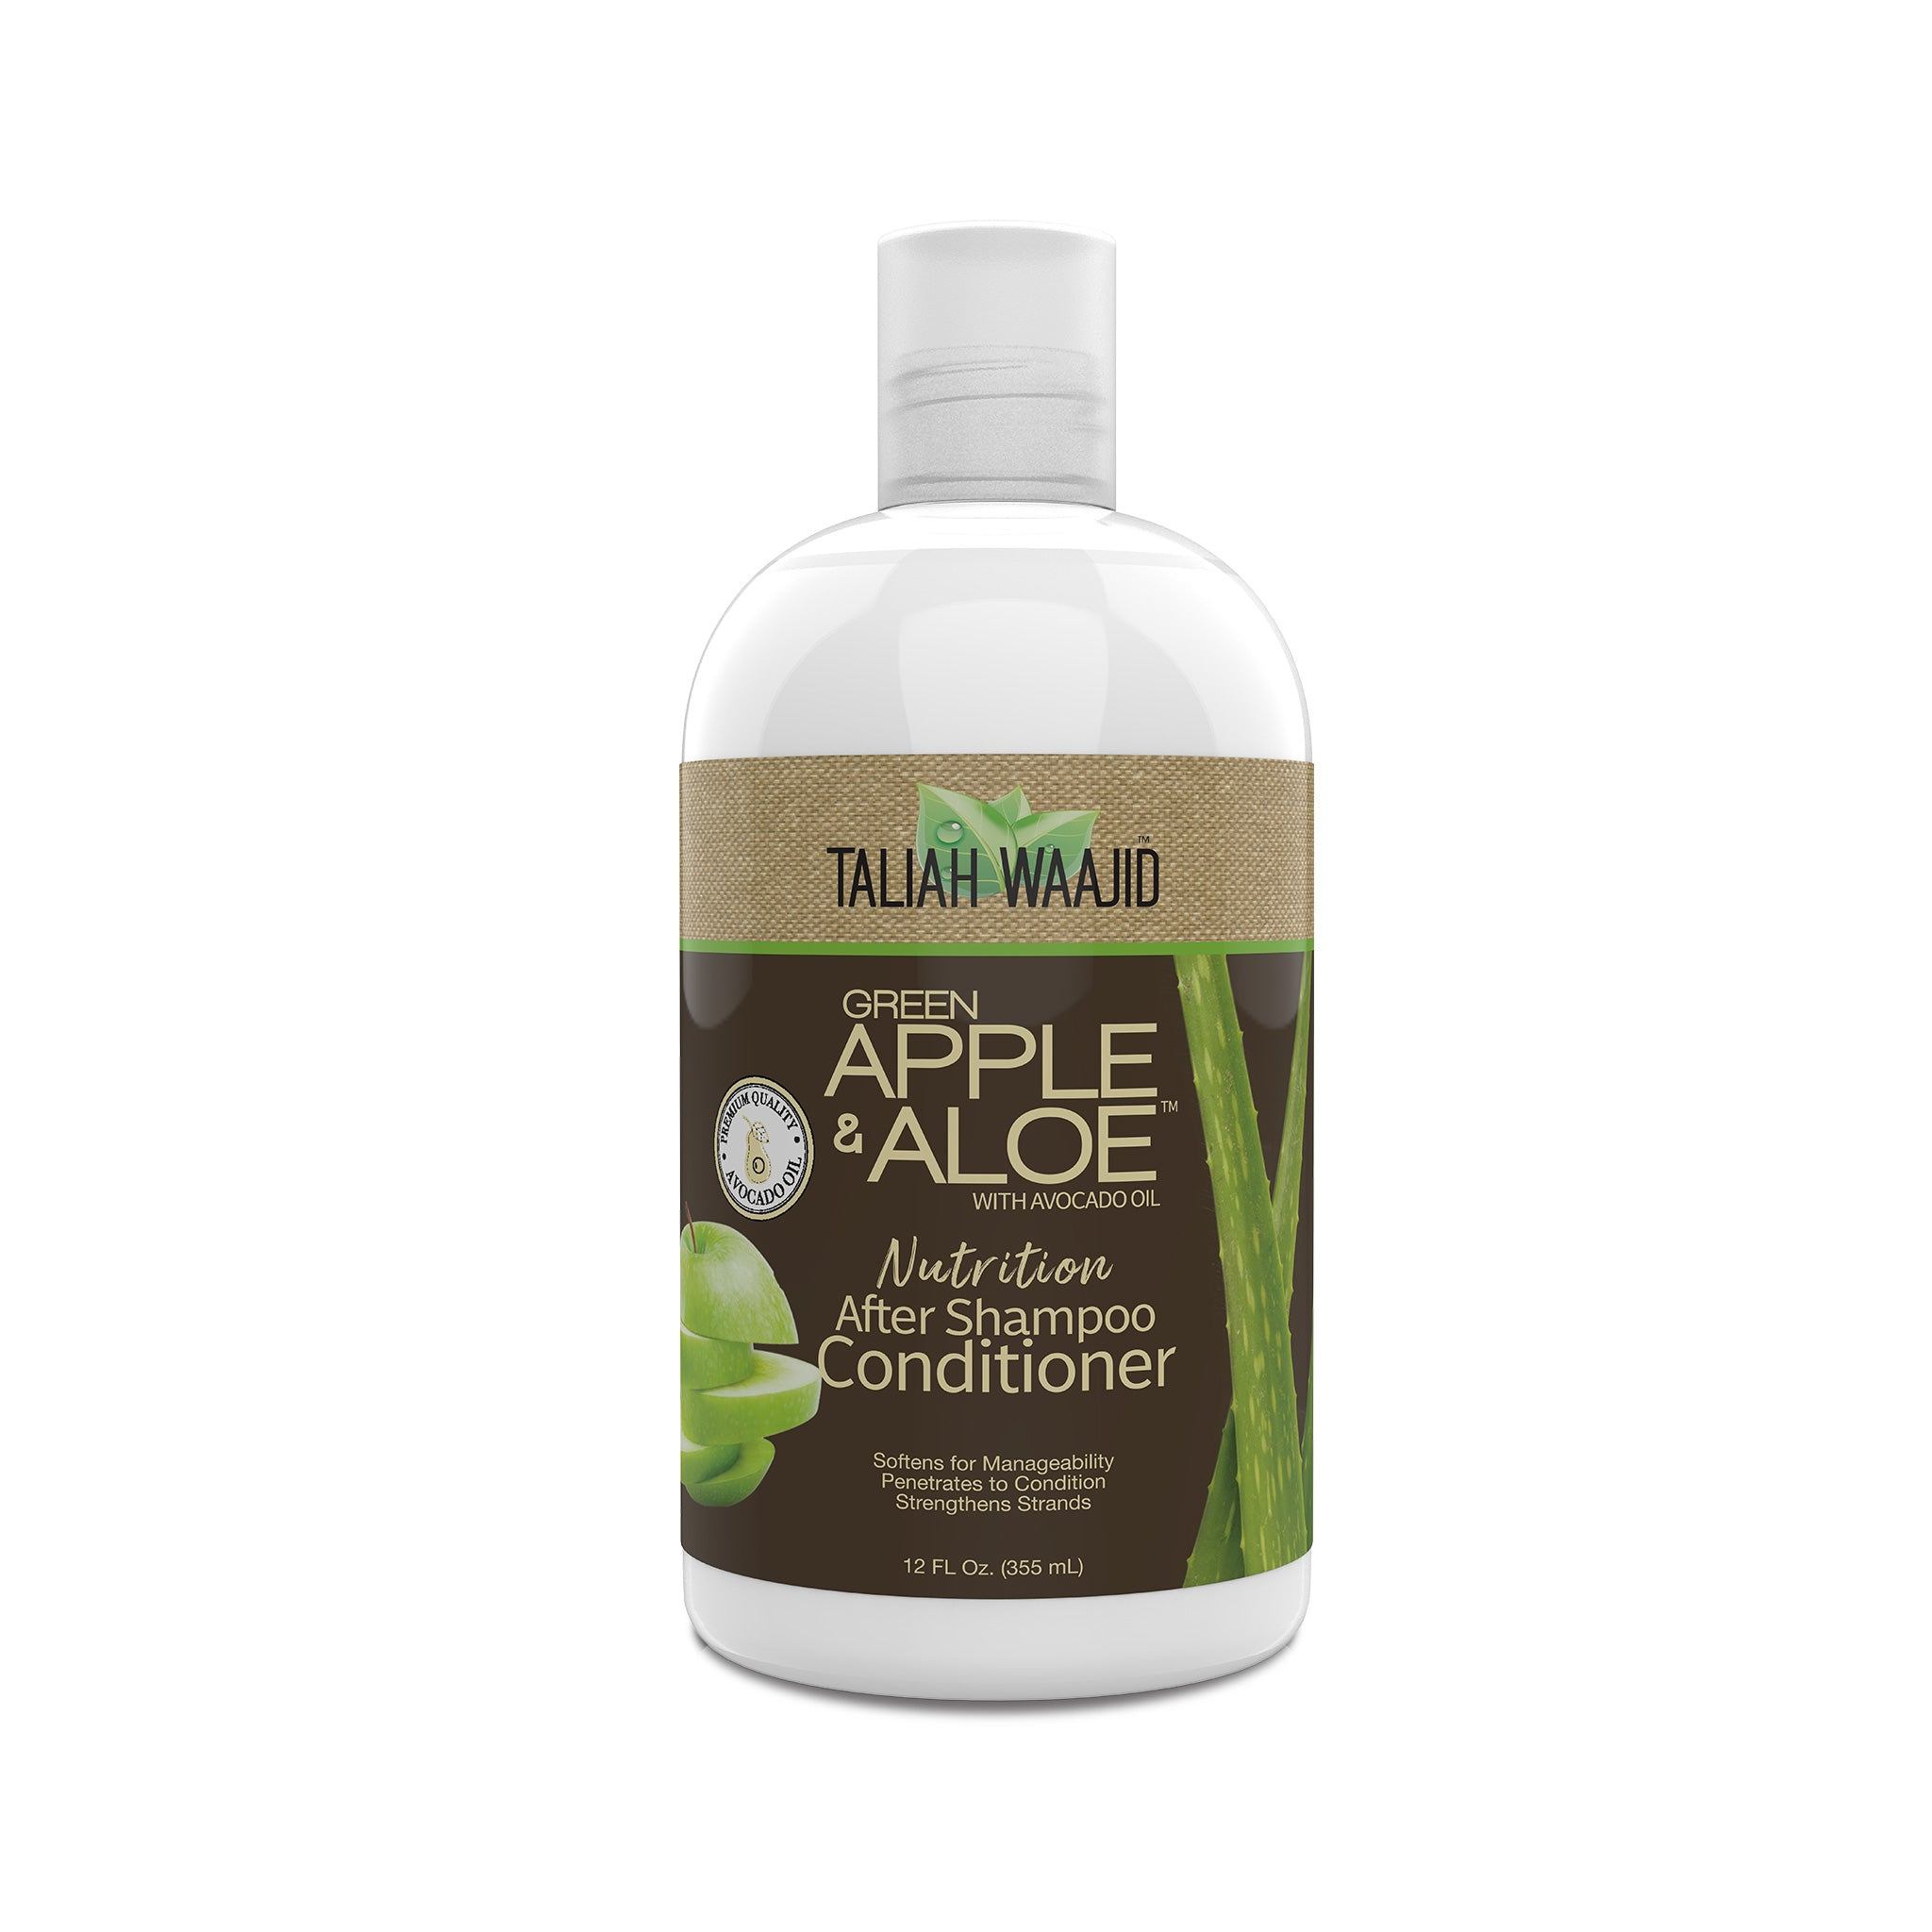 Apple Aloe Nutrition After Shampoo Conditioner 12oz